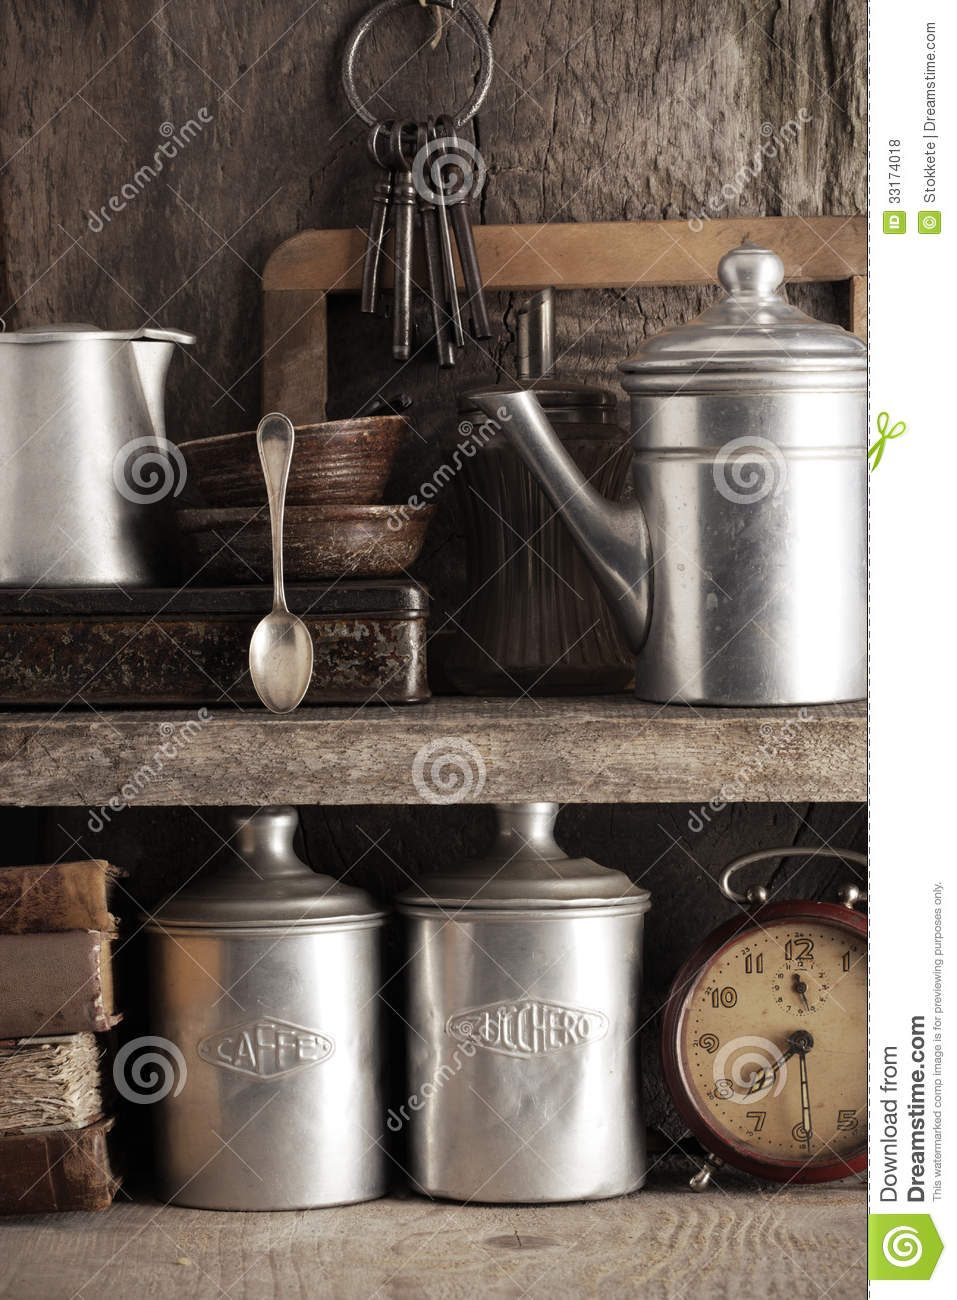 Old objects royalty free stock photos image 33174018 for Old objects